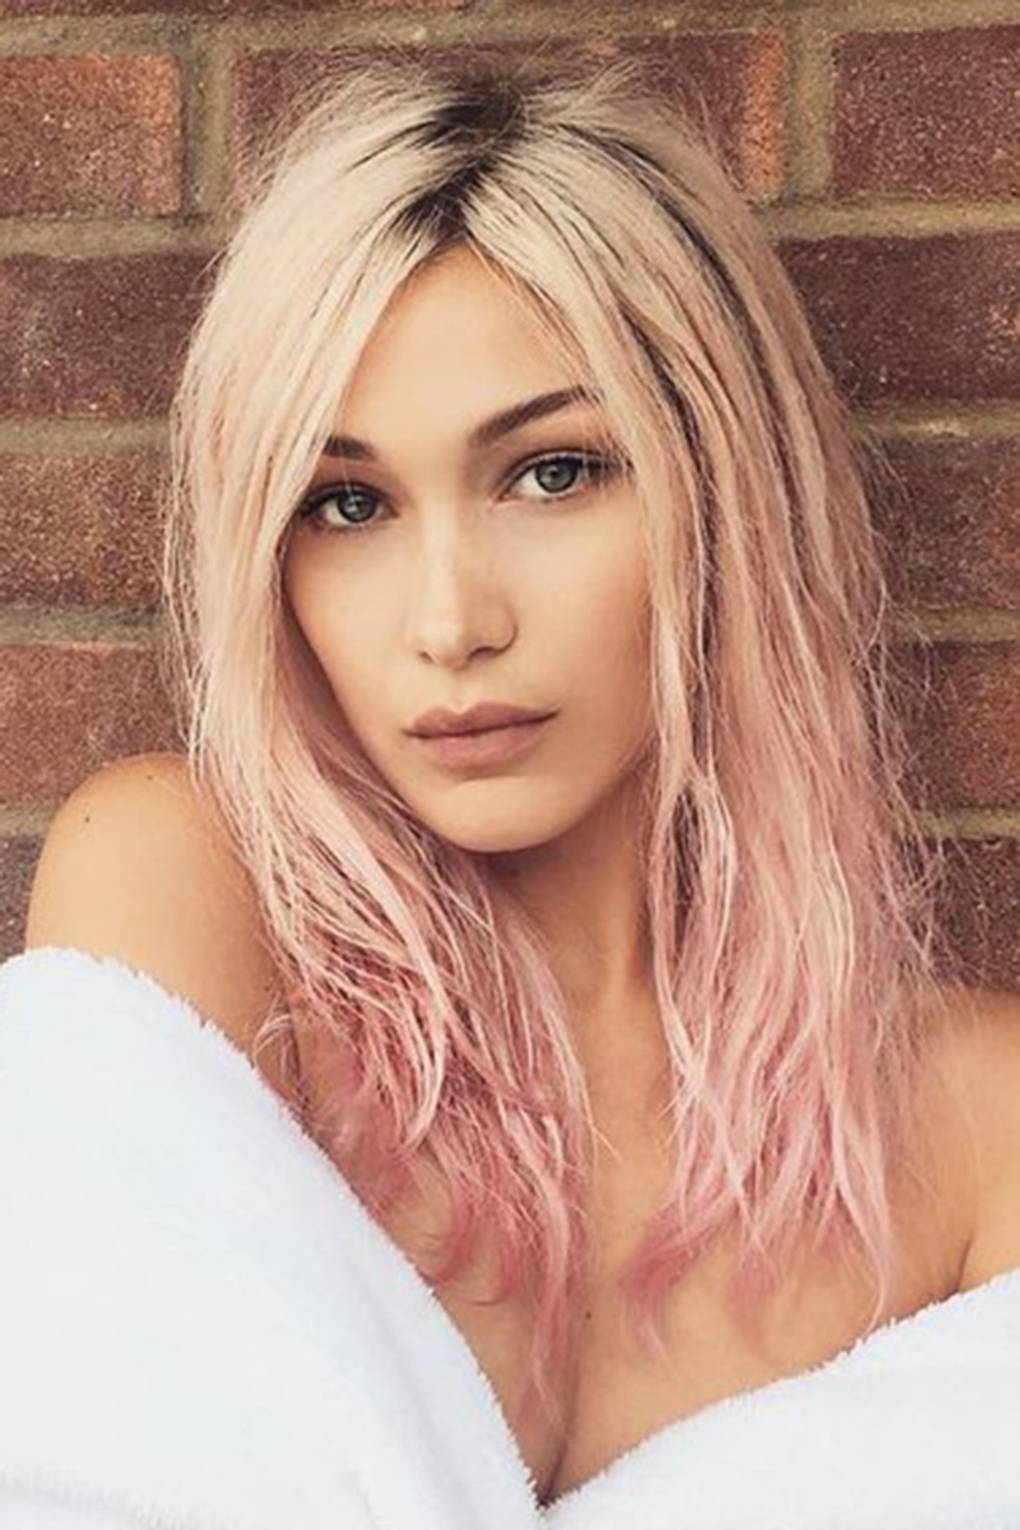 Communication on this topic: Elsa Hosks Newly Dyed Rose-Gold Hair Is , elsa-hosks-newly-dyed-rose-gold-hair-is/